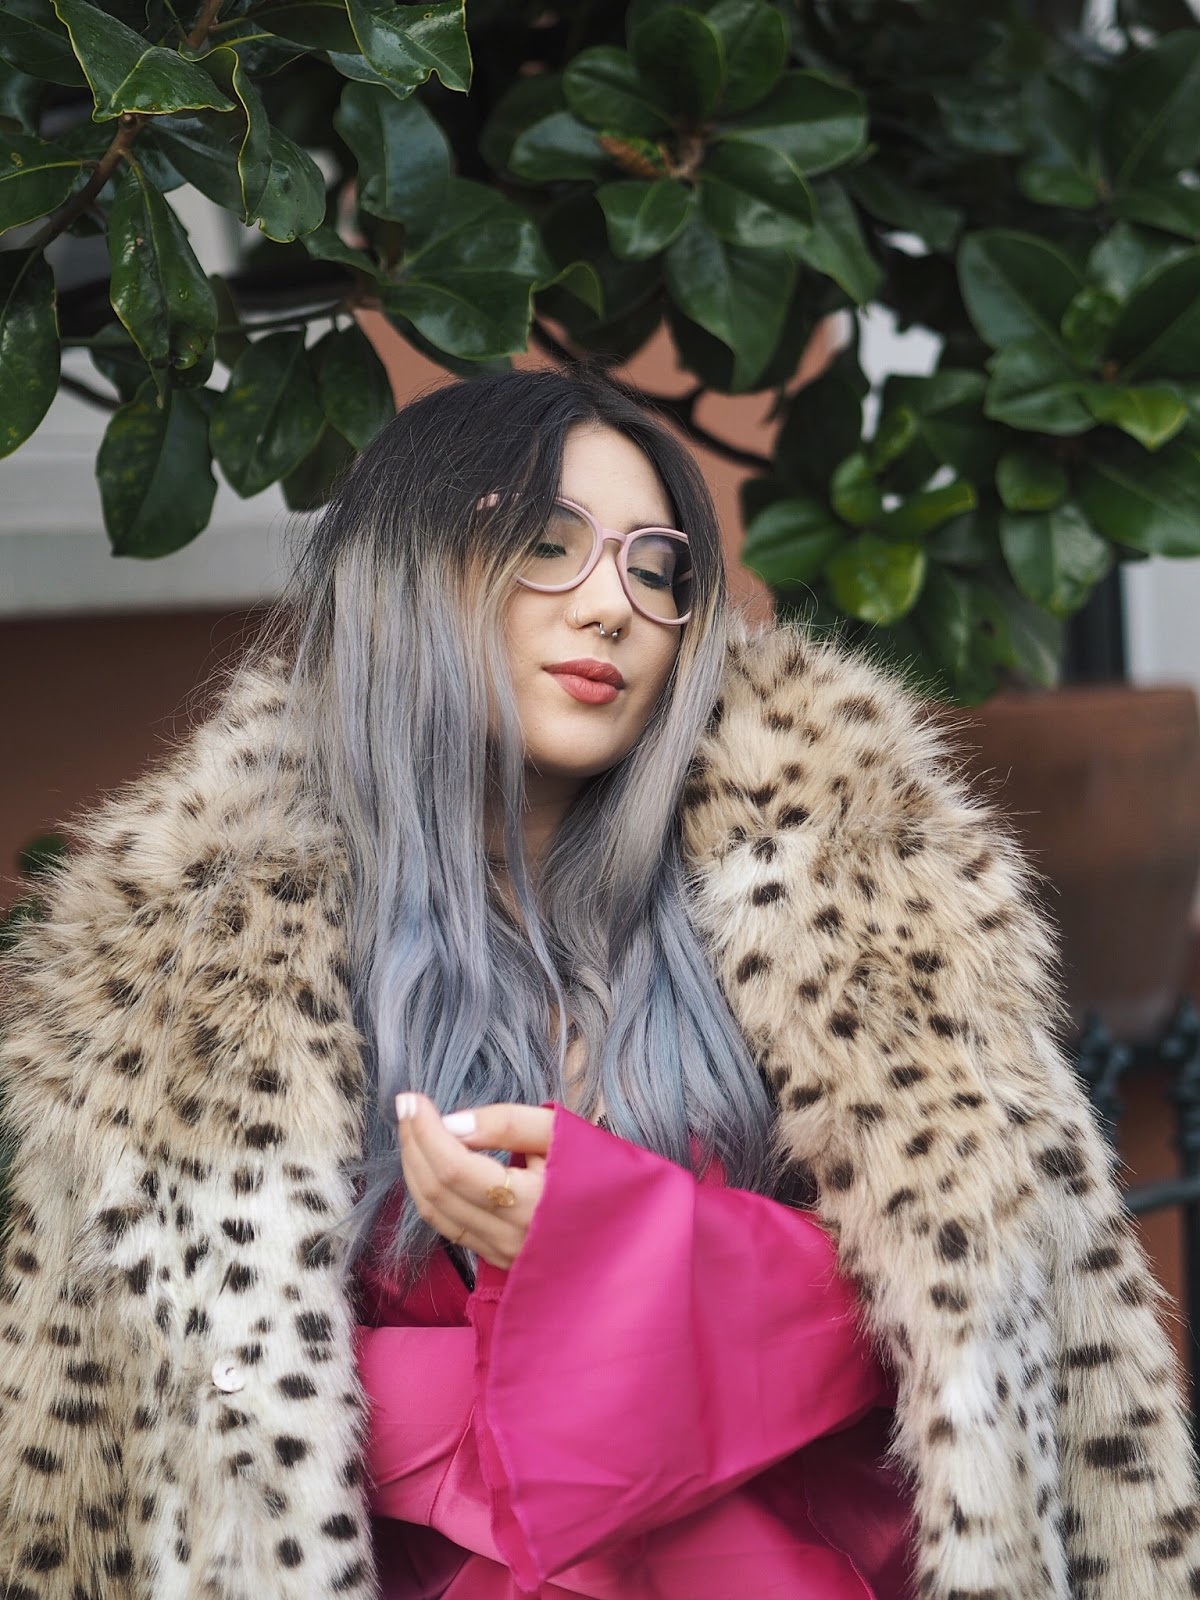 8f3a0fed7ae Updating My Style For 2018 With New Eyewear - The Kitty Luxe